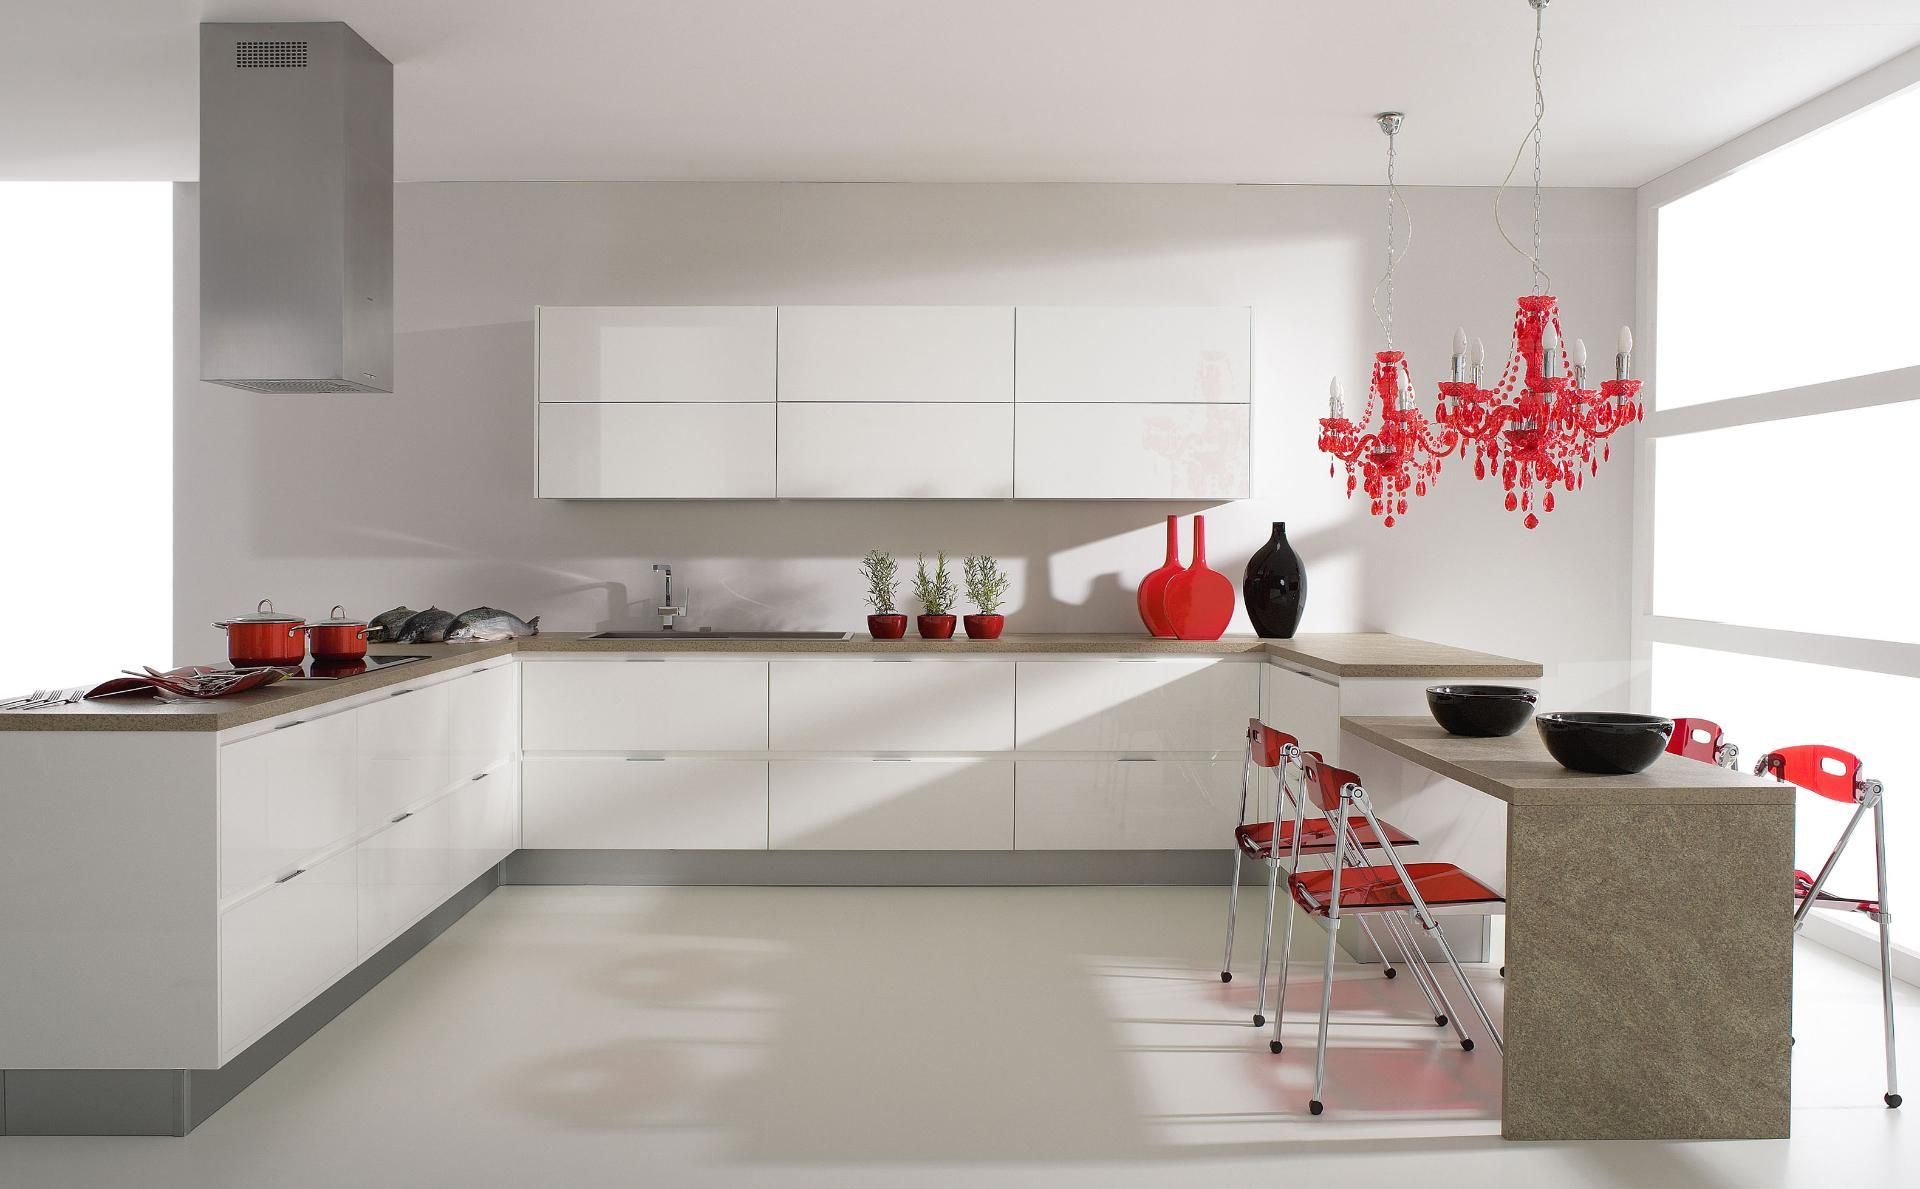 Modern Glossy White European Style Kitchen Cabinet Inspiration In Minimalist U Sha Kitchen Cabinet Styles Kitchen Cabinet Inspiration European Kitchen Cabinets